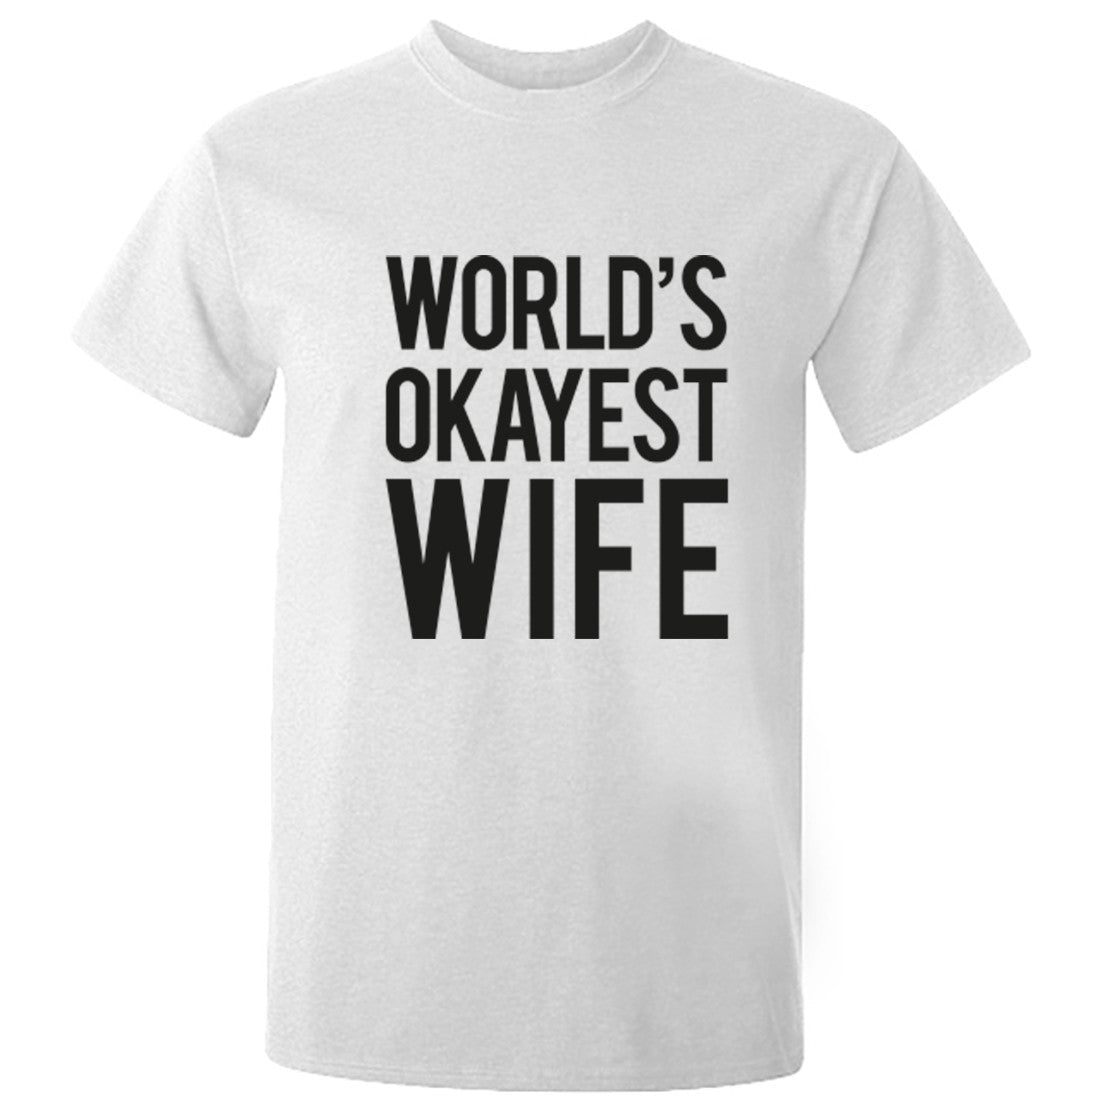 Worlds Okayest Wife Unisex Fit T-Shirt K0479 - Illustrated Identity Ltd.